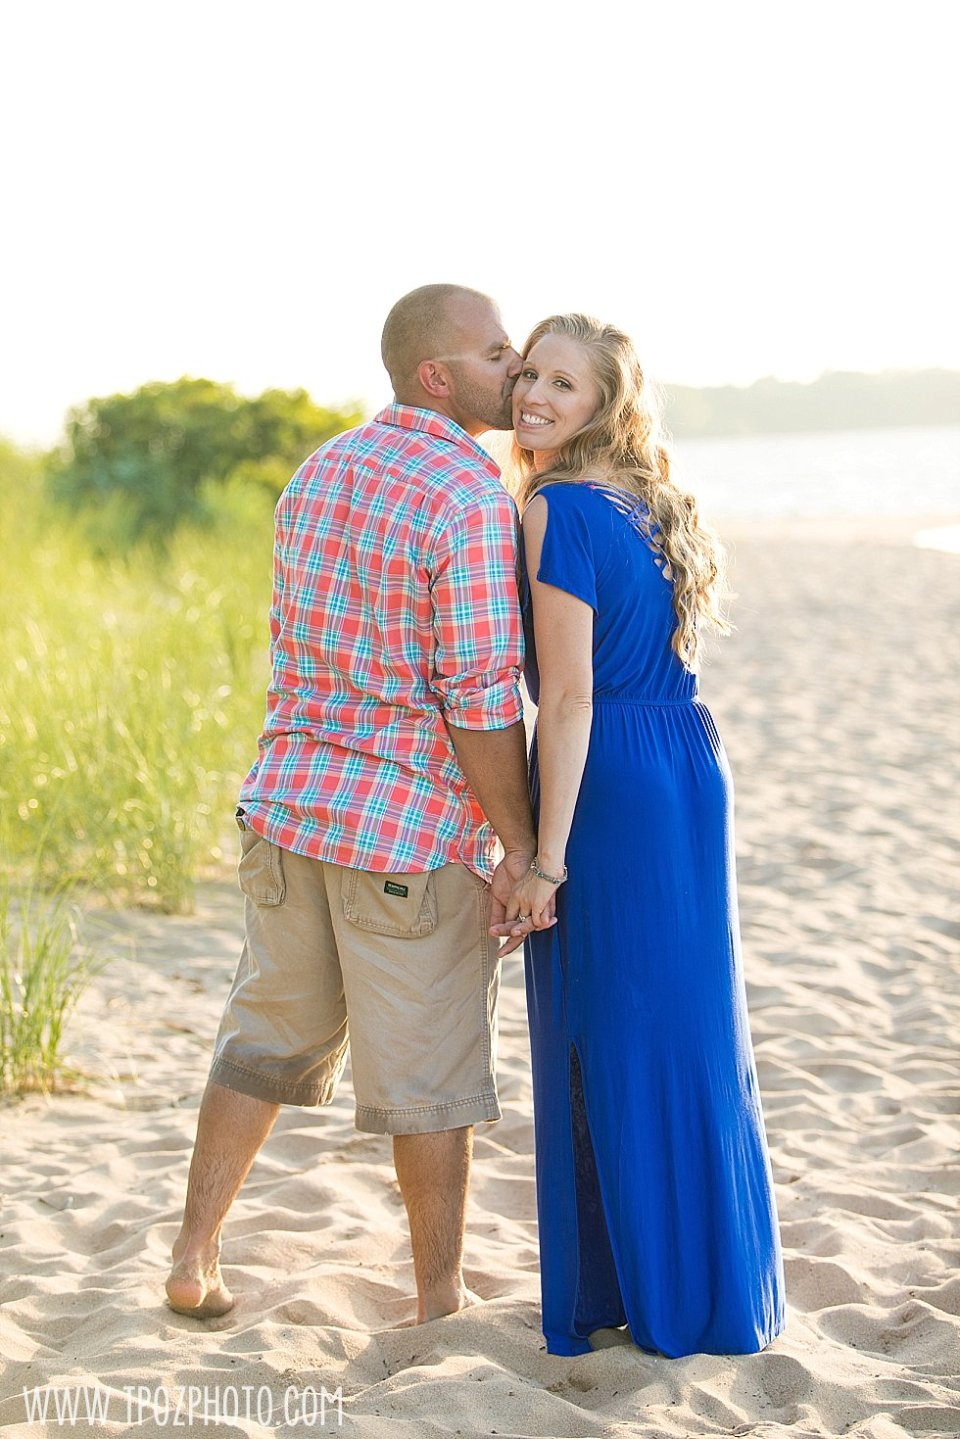 Hart-Miller Island Engagement Session •  tPoz Photography •  www.tpozphoto.com